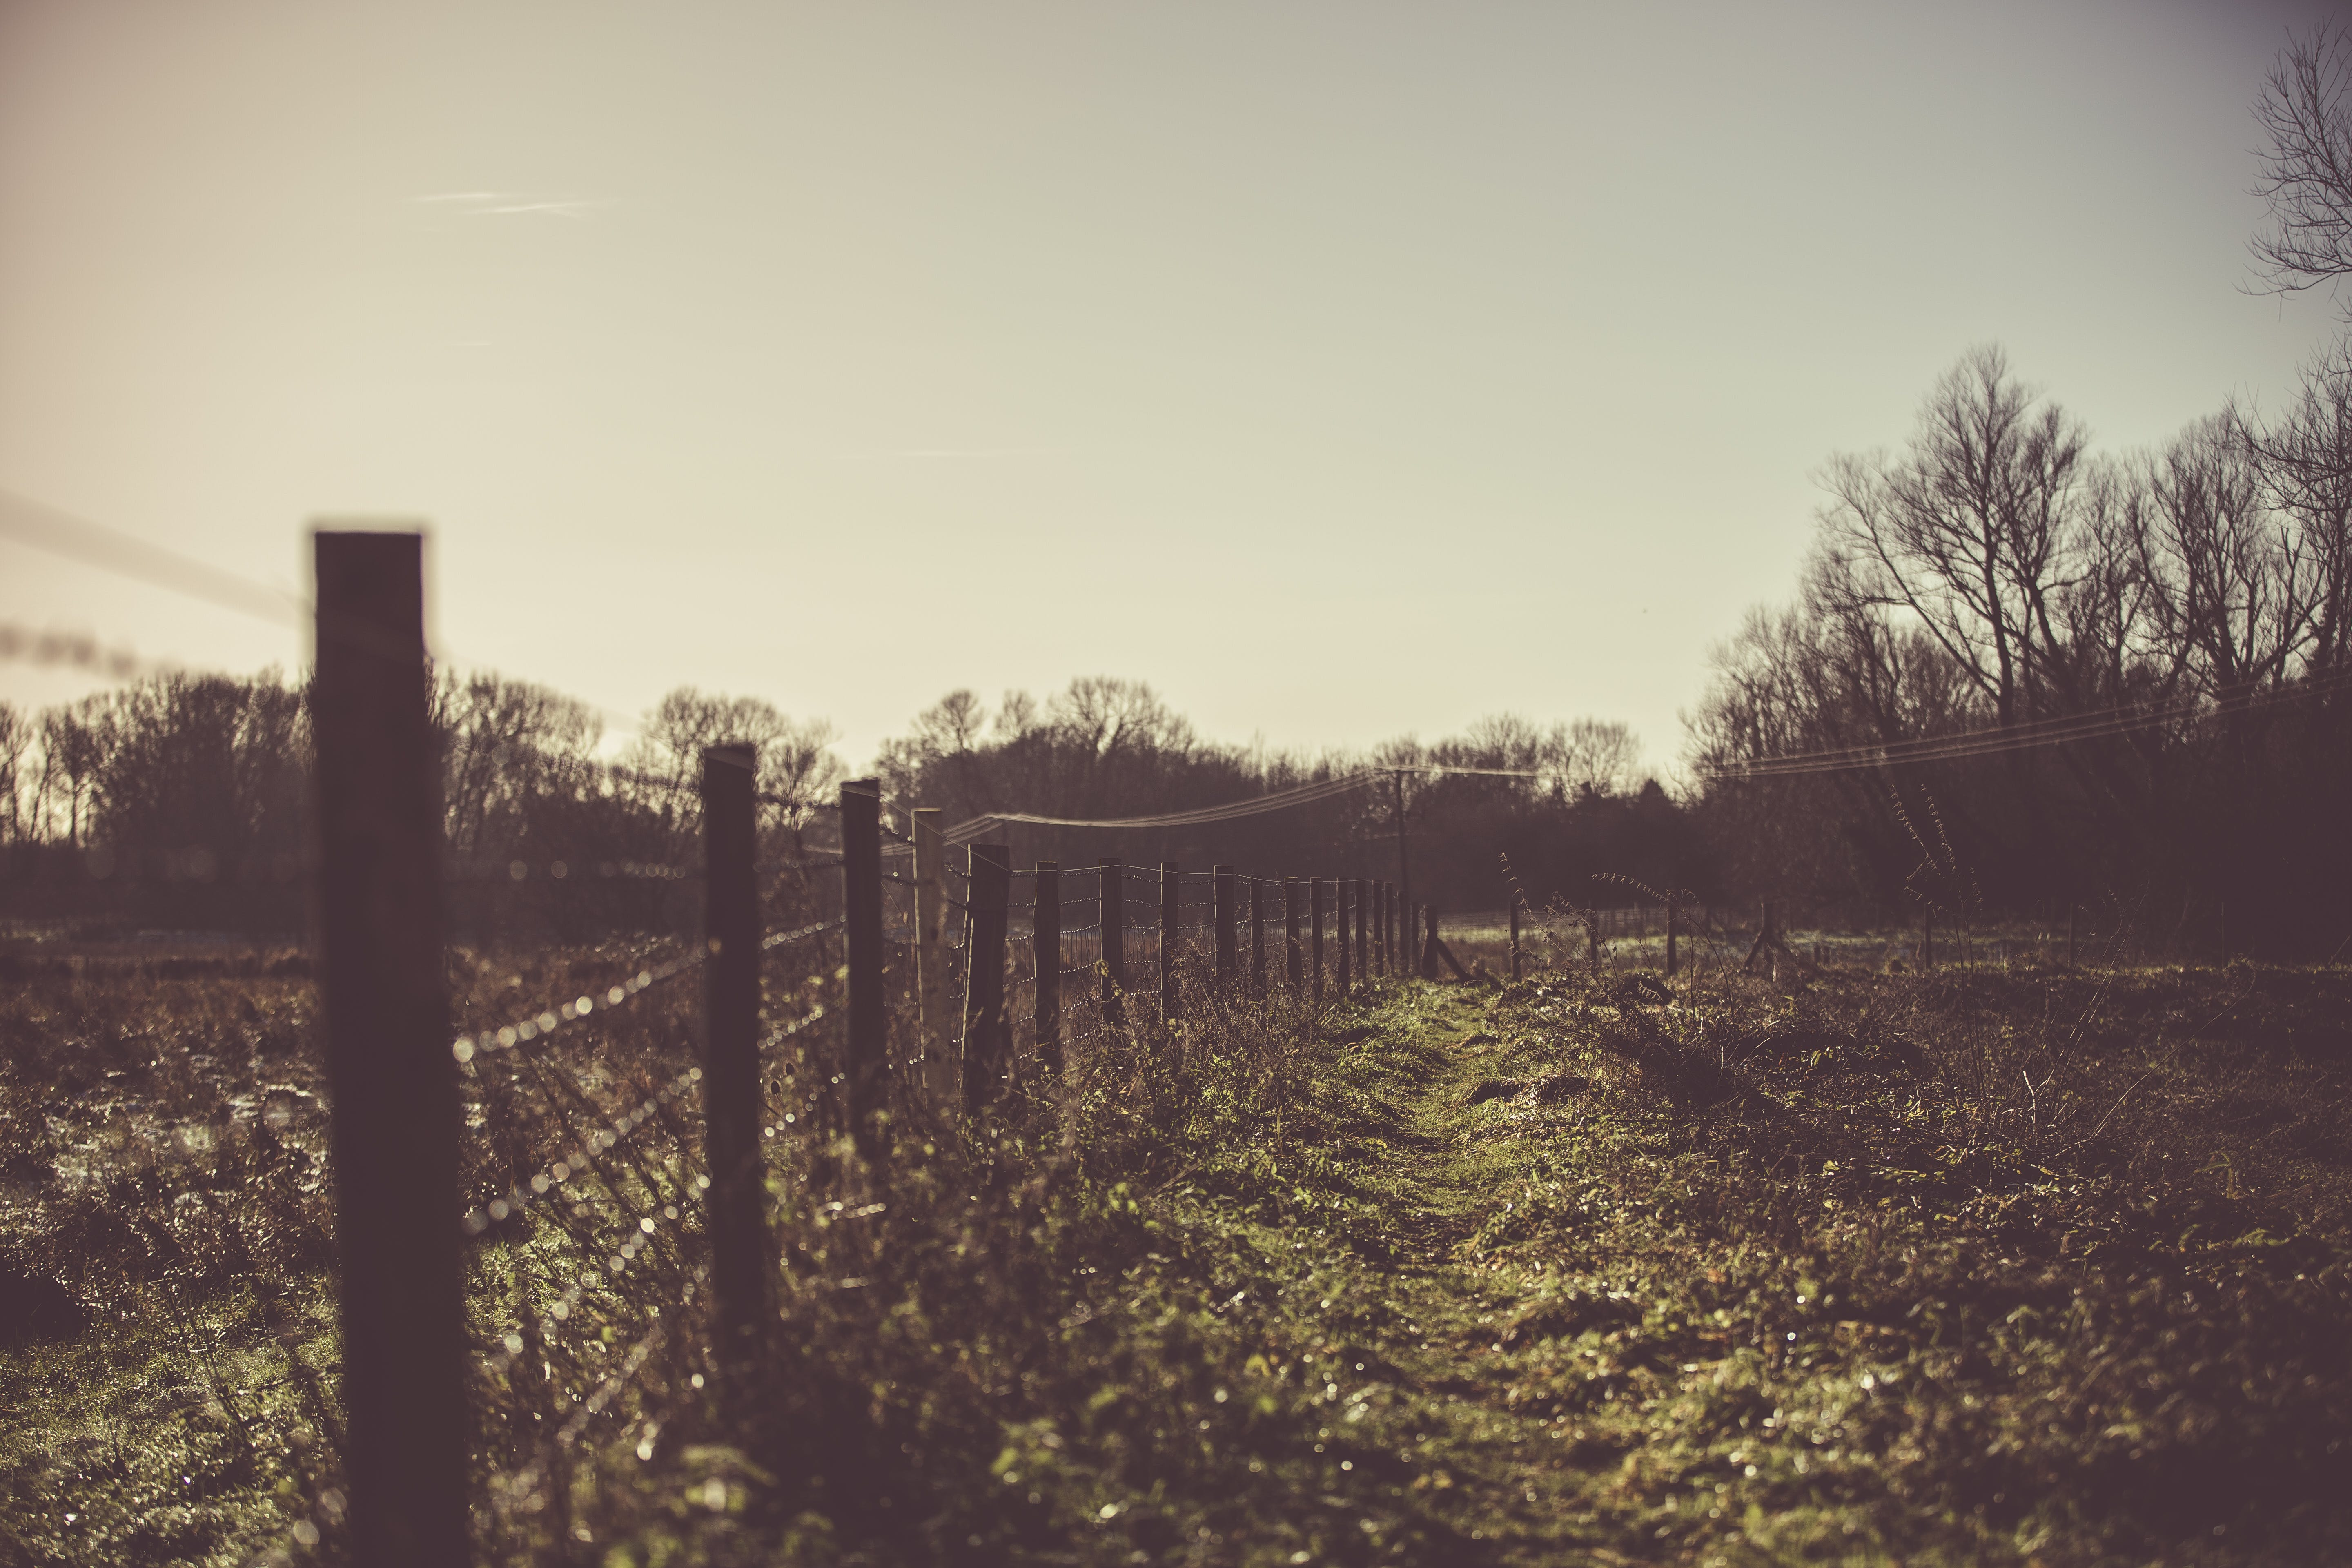 Silhouette Of Fence